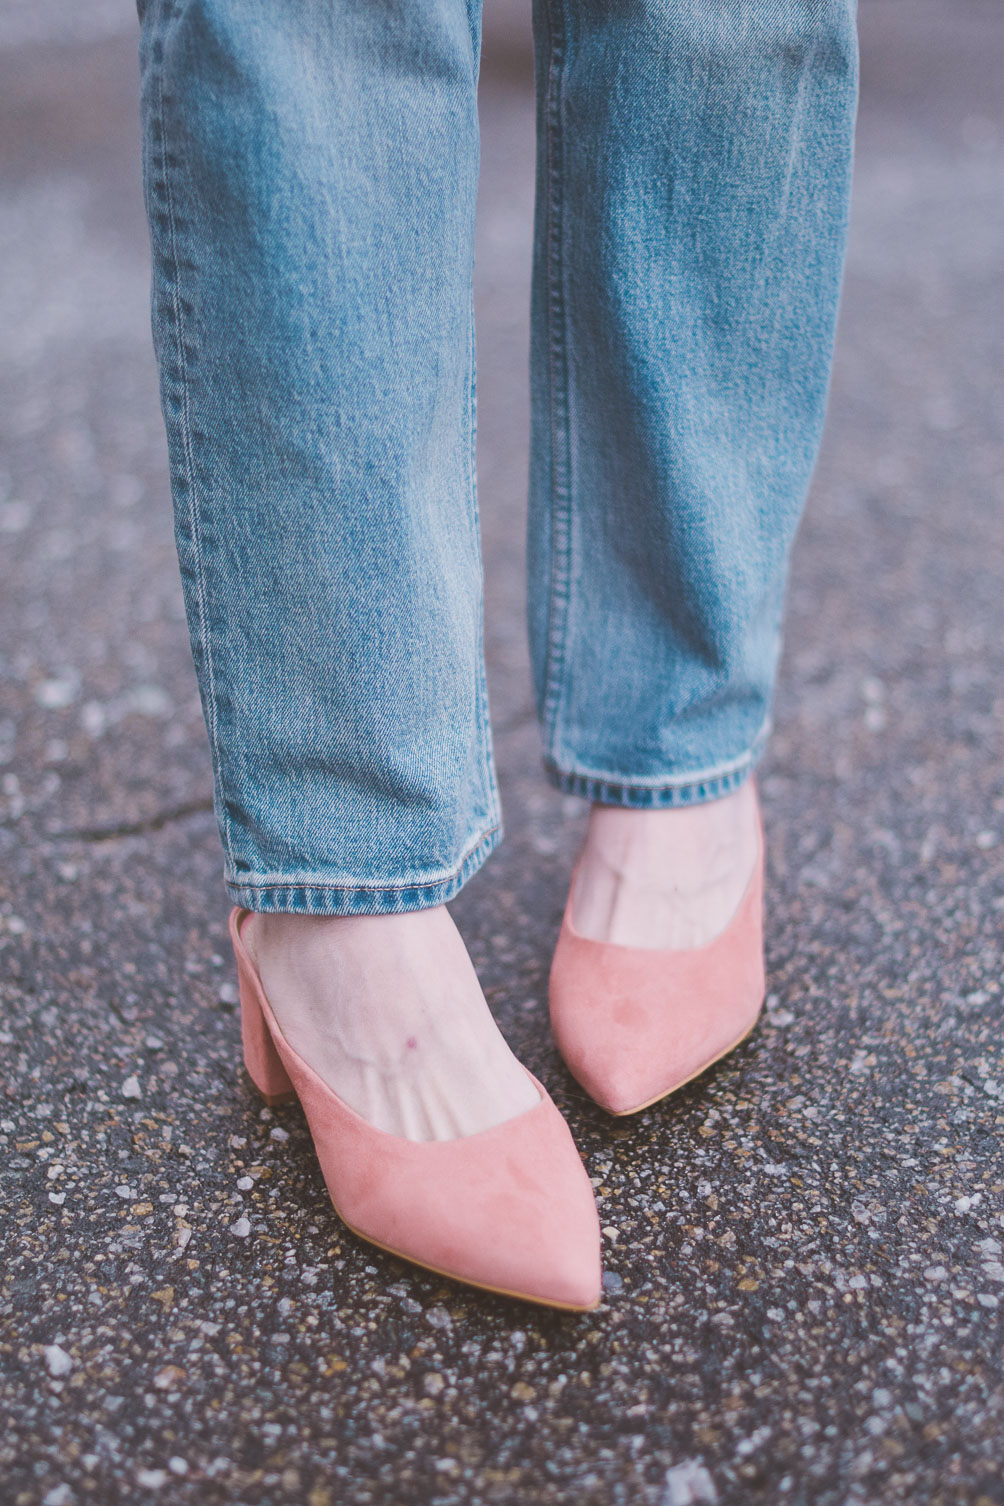 wearing Gap pink suede block heel mules